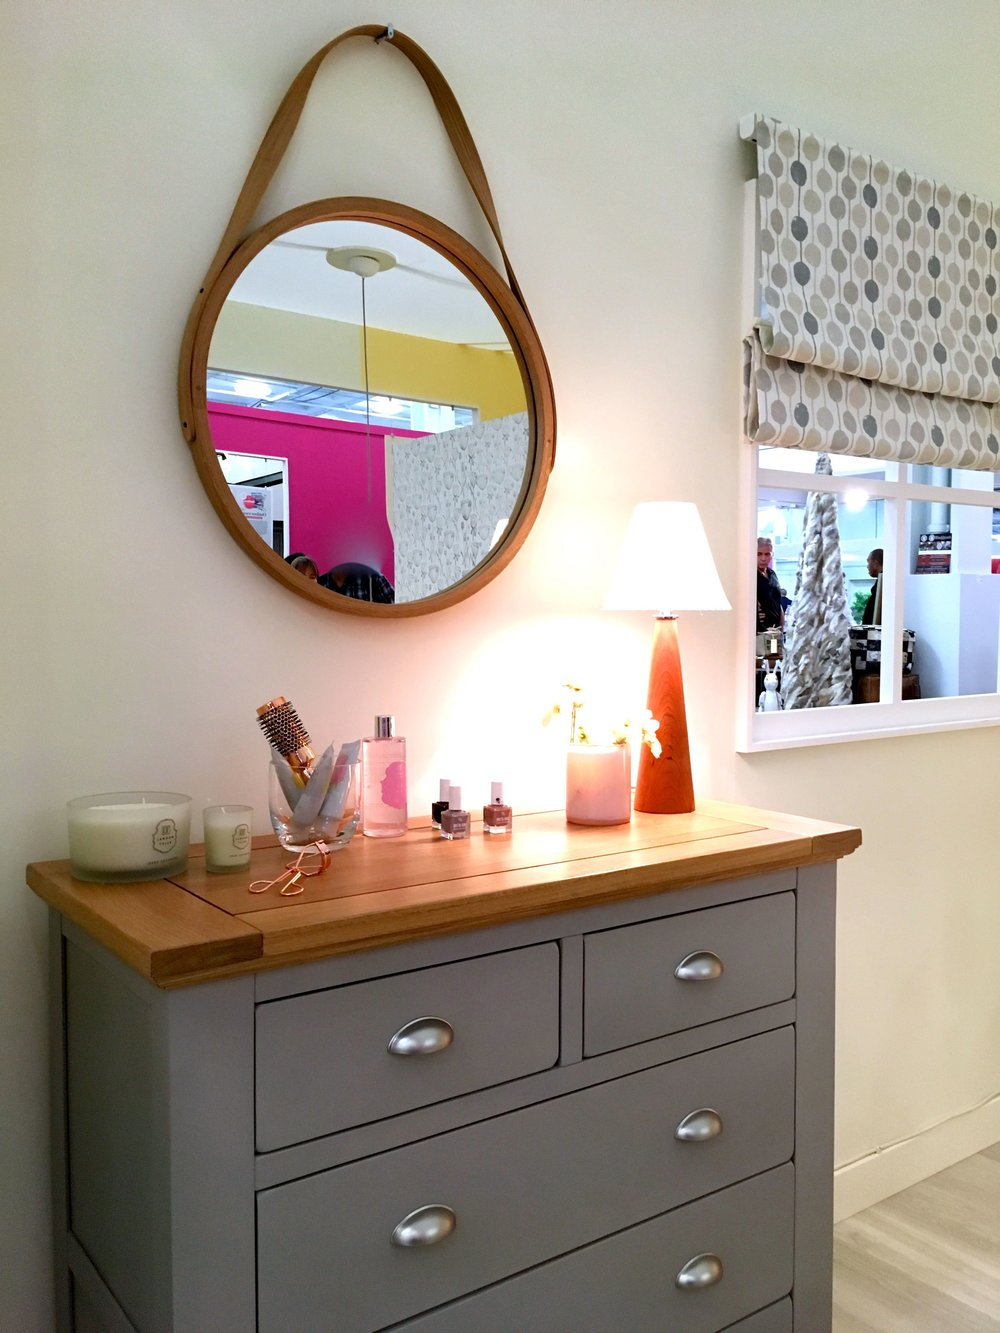 A mirror above a chest of drawers at the Ideal Home Show